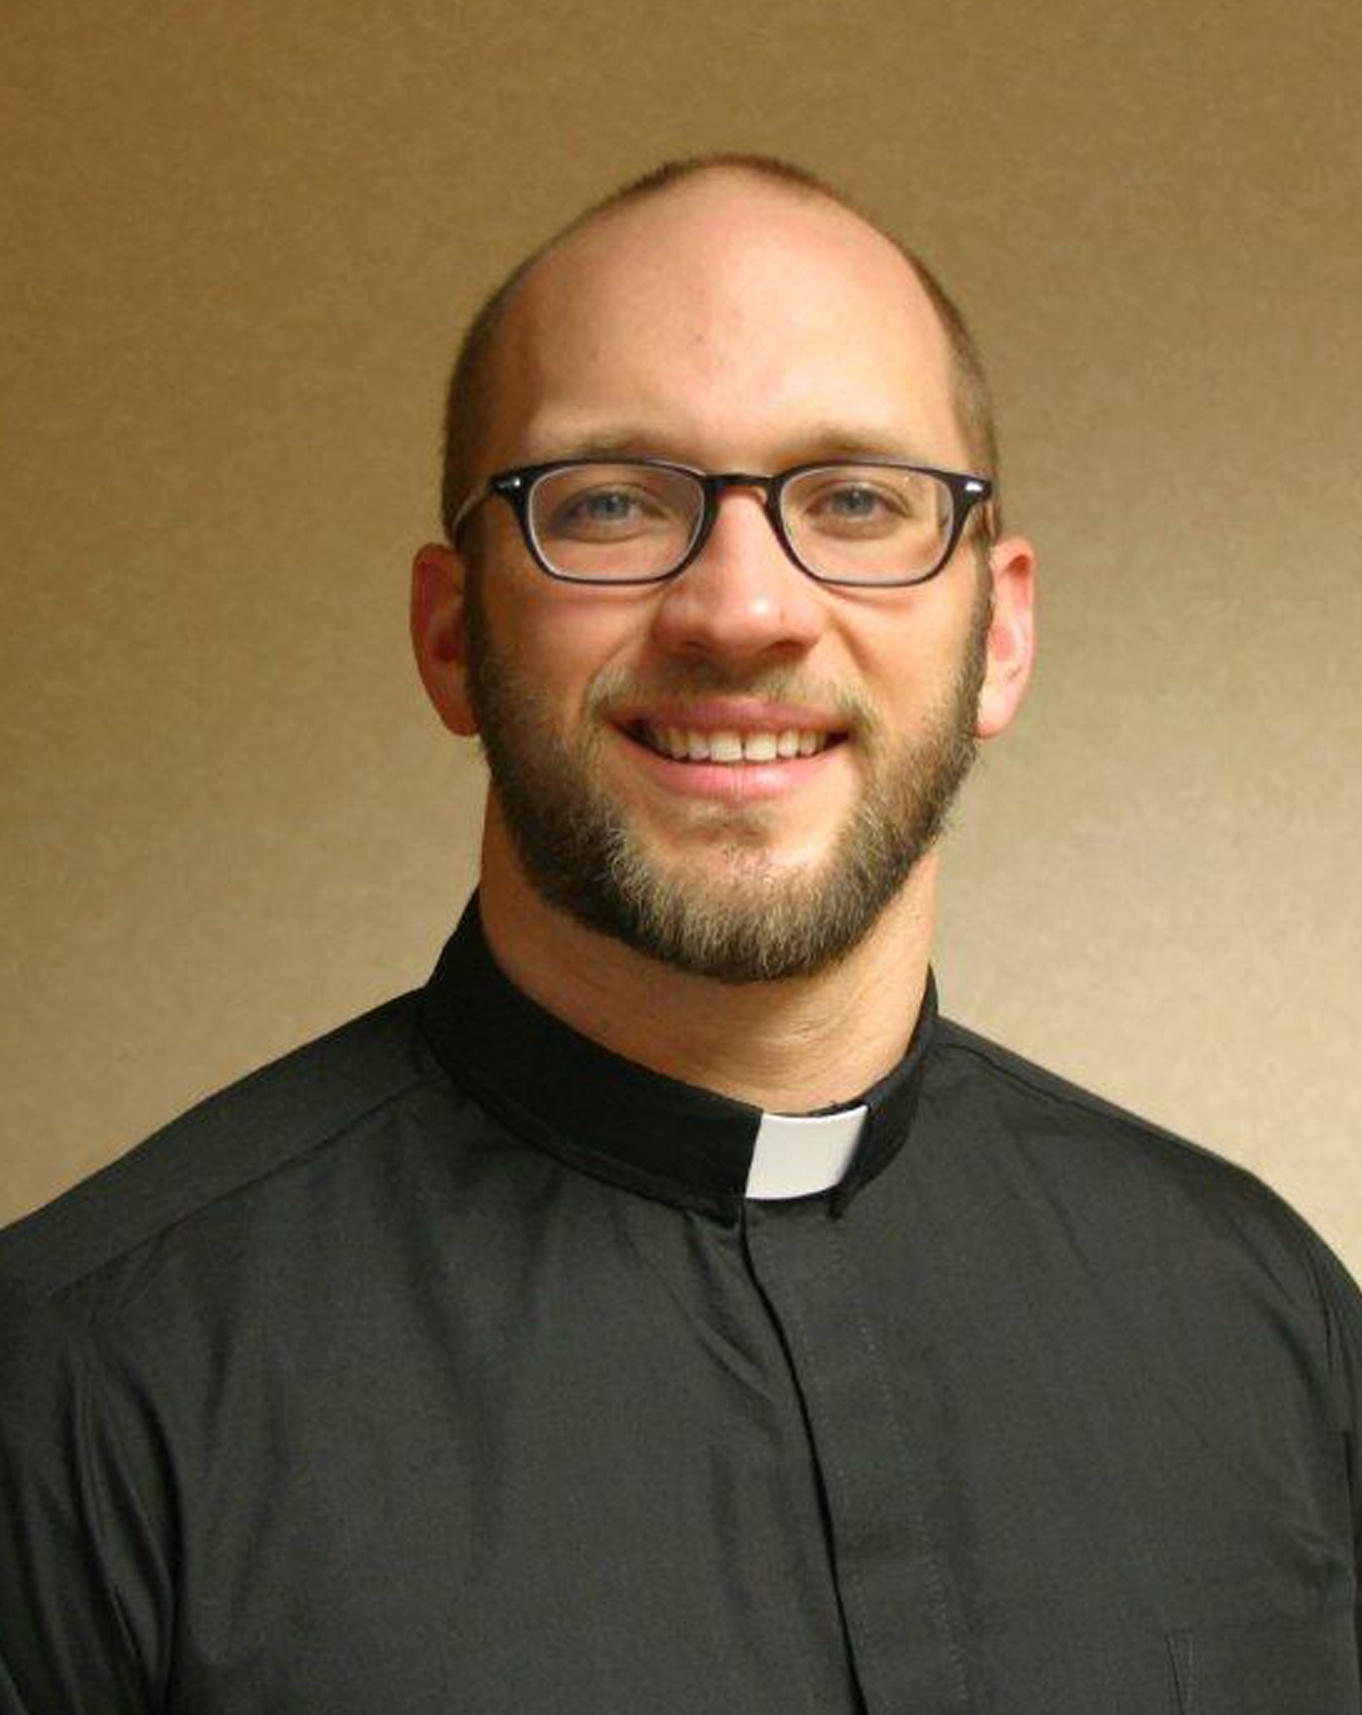 Eric Immel, S.J. (Photo by Midwest Jesuits)